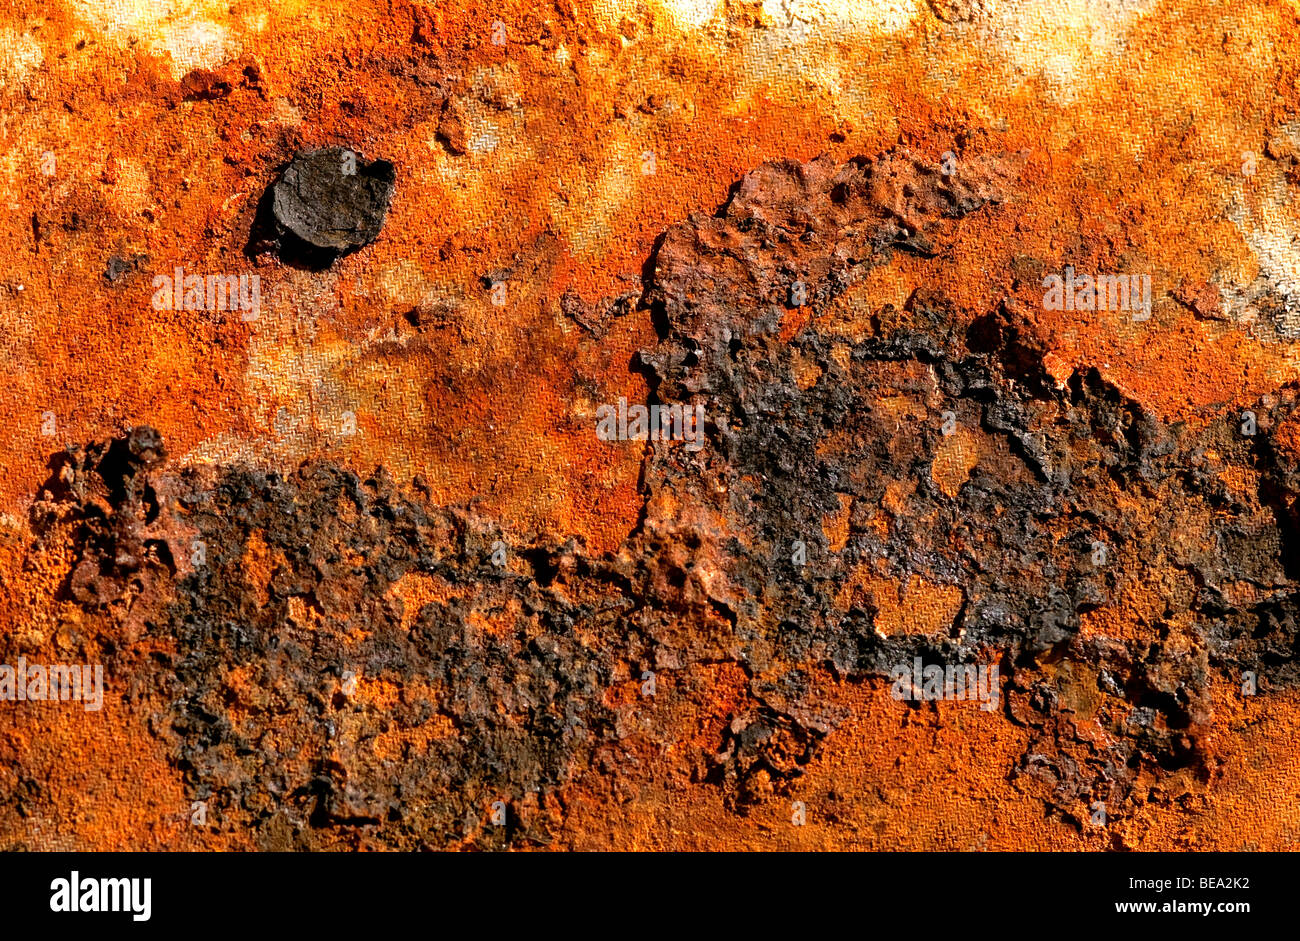 Close up of rusted, dilapidated metal - Stock Image